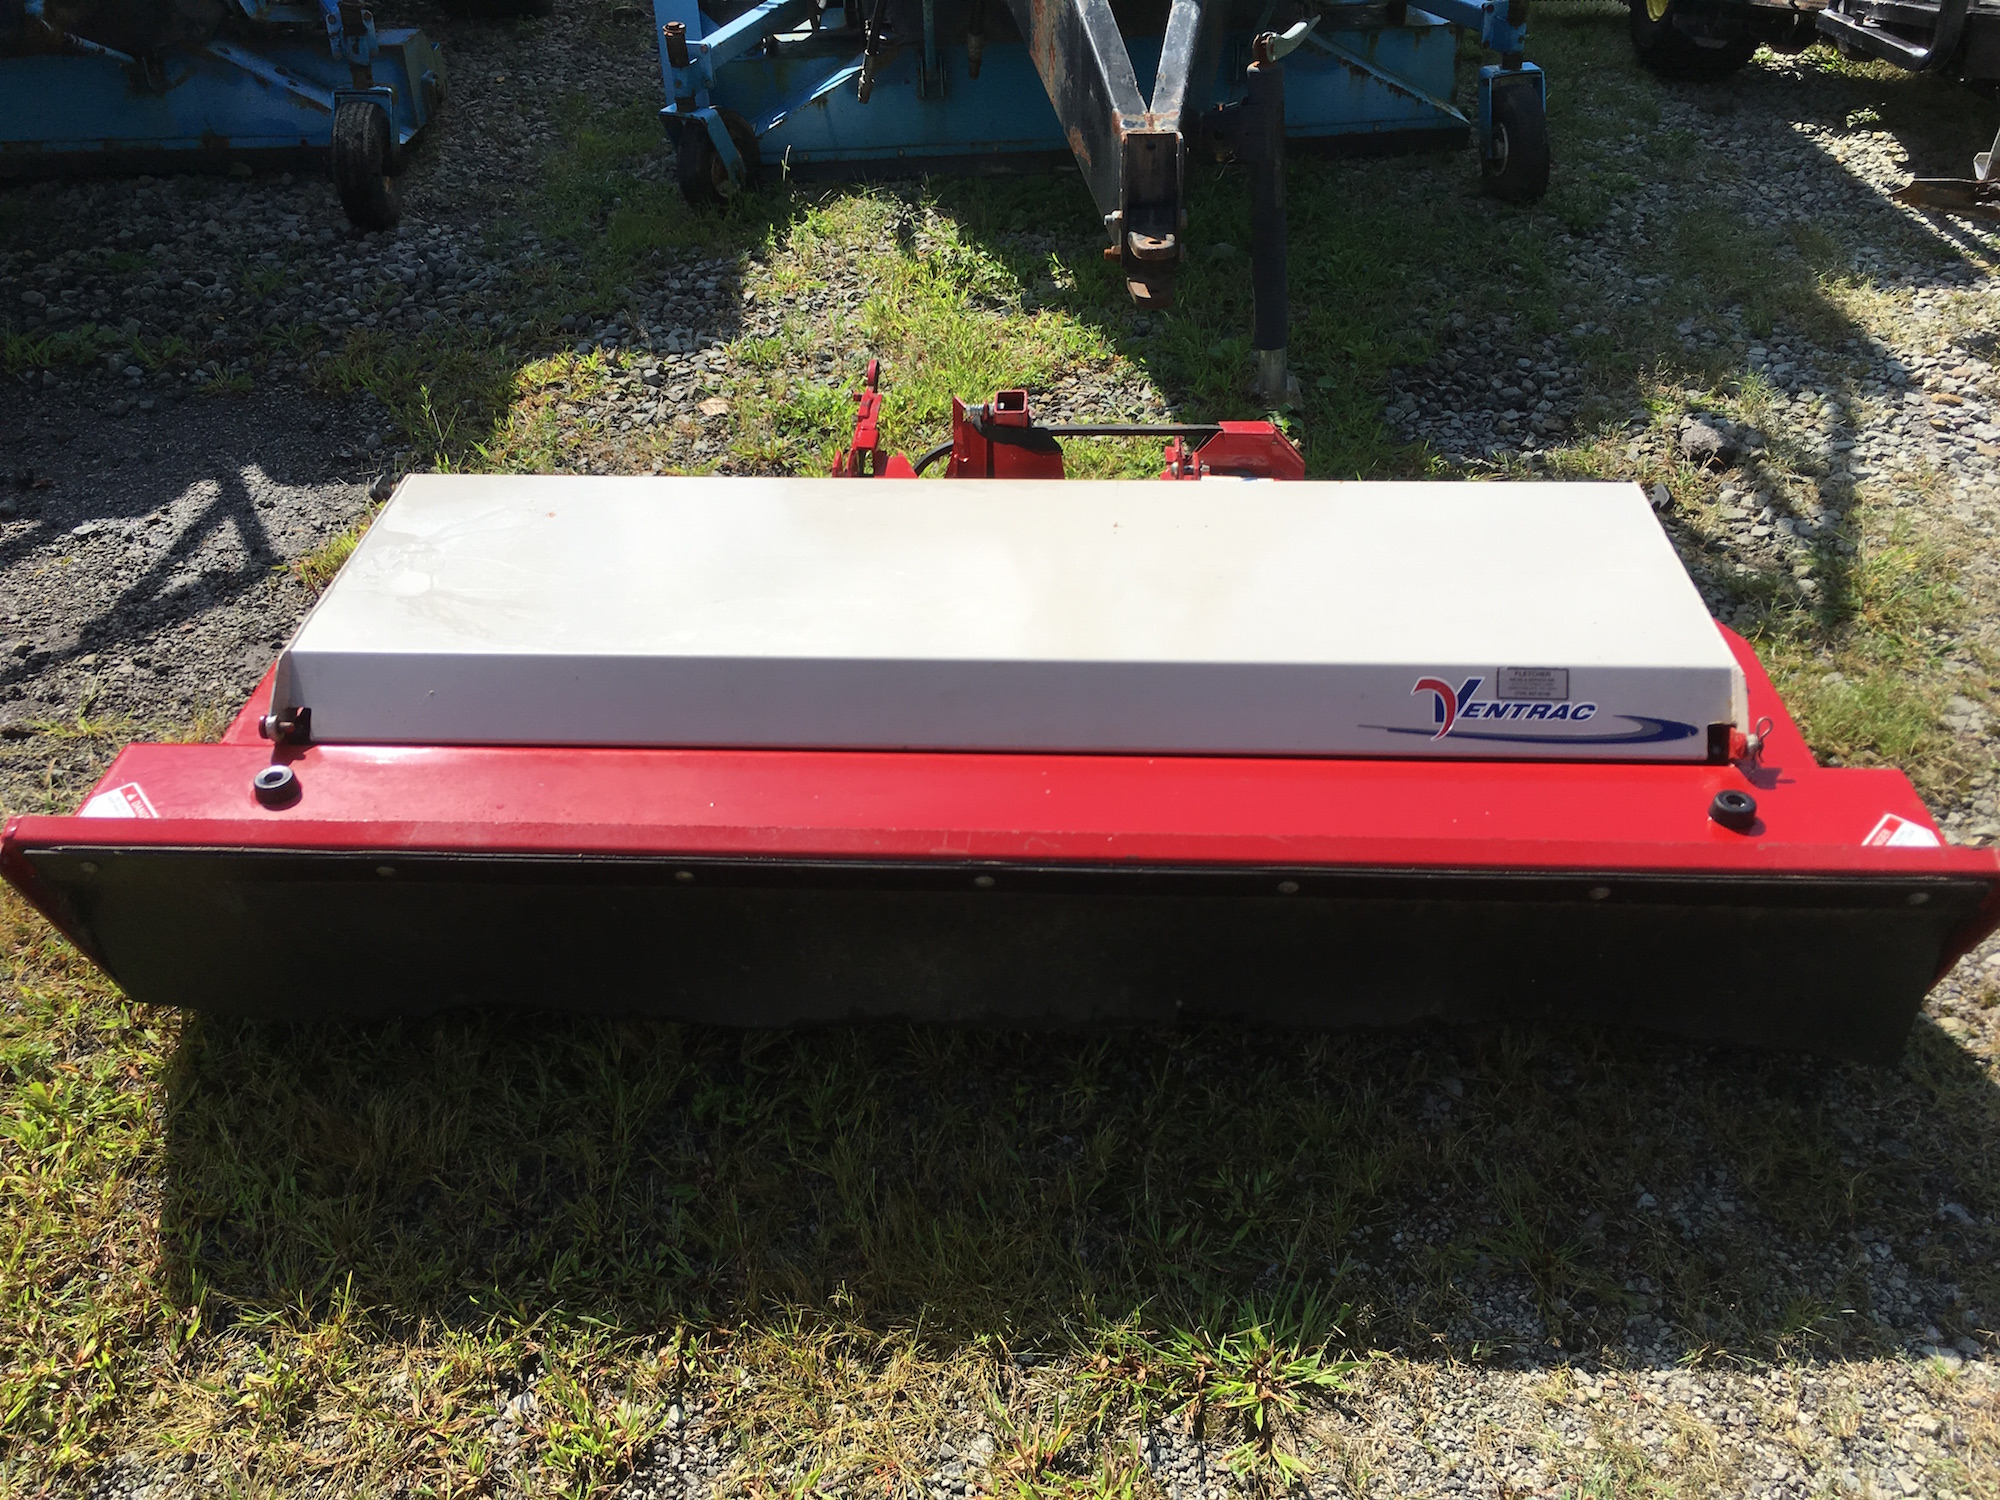 Ventrac-RotaryCutter_01